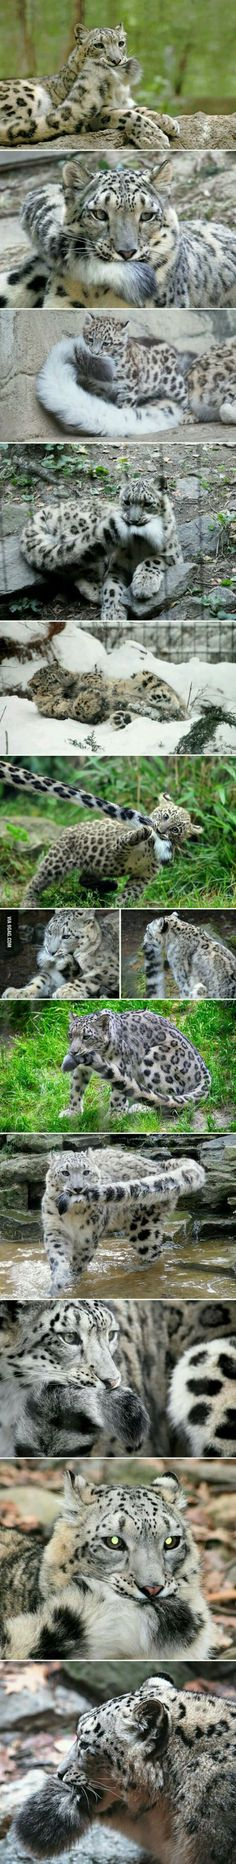 you are having a bad day, just look at these pictures of snow leopards nomming on their fluffy tails!If you are having a bad day, just look at these pictures of snow leopards nomming on their fluffy tails! Cute Funny Animals, Cute Baby Animals, Animals And Pets, Cute Cats, Funny Cats, Wild Animals, Big Cats, Crazy Cats, Cats And Kittens